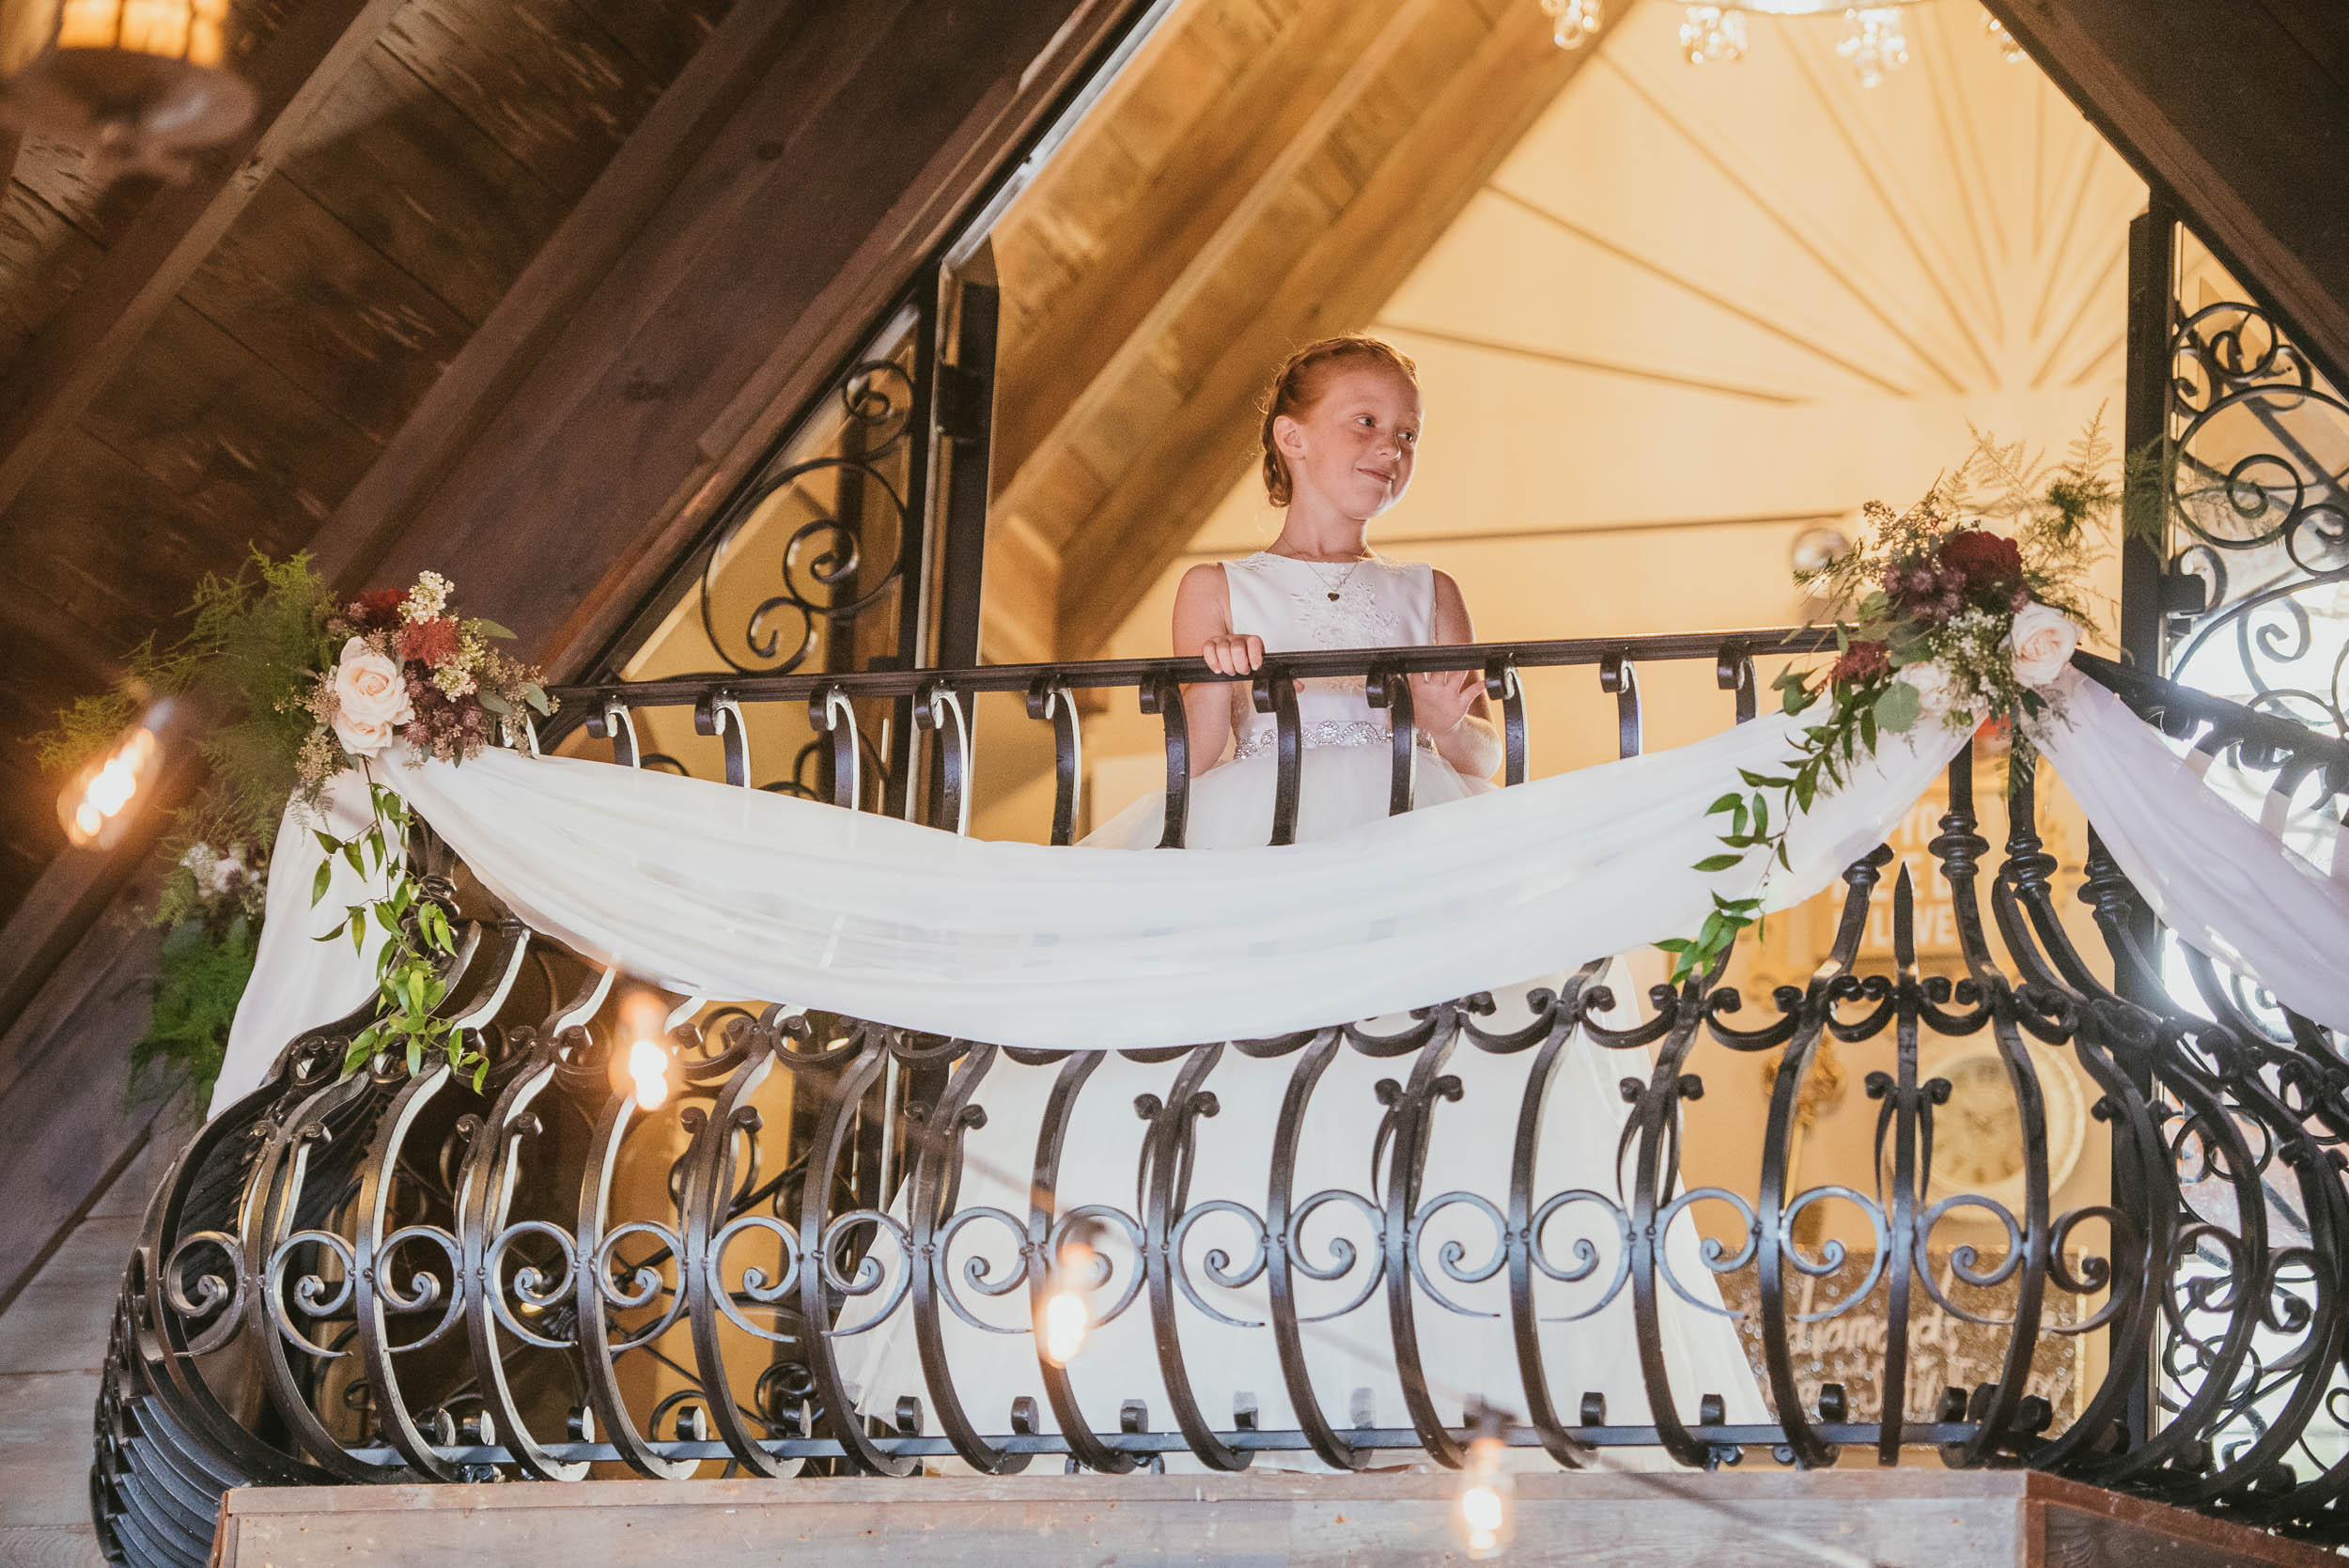 hengstenbergs-florist-kate-andrew-©in-focus-nyc-photography-07.jpg